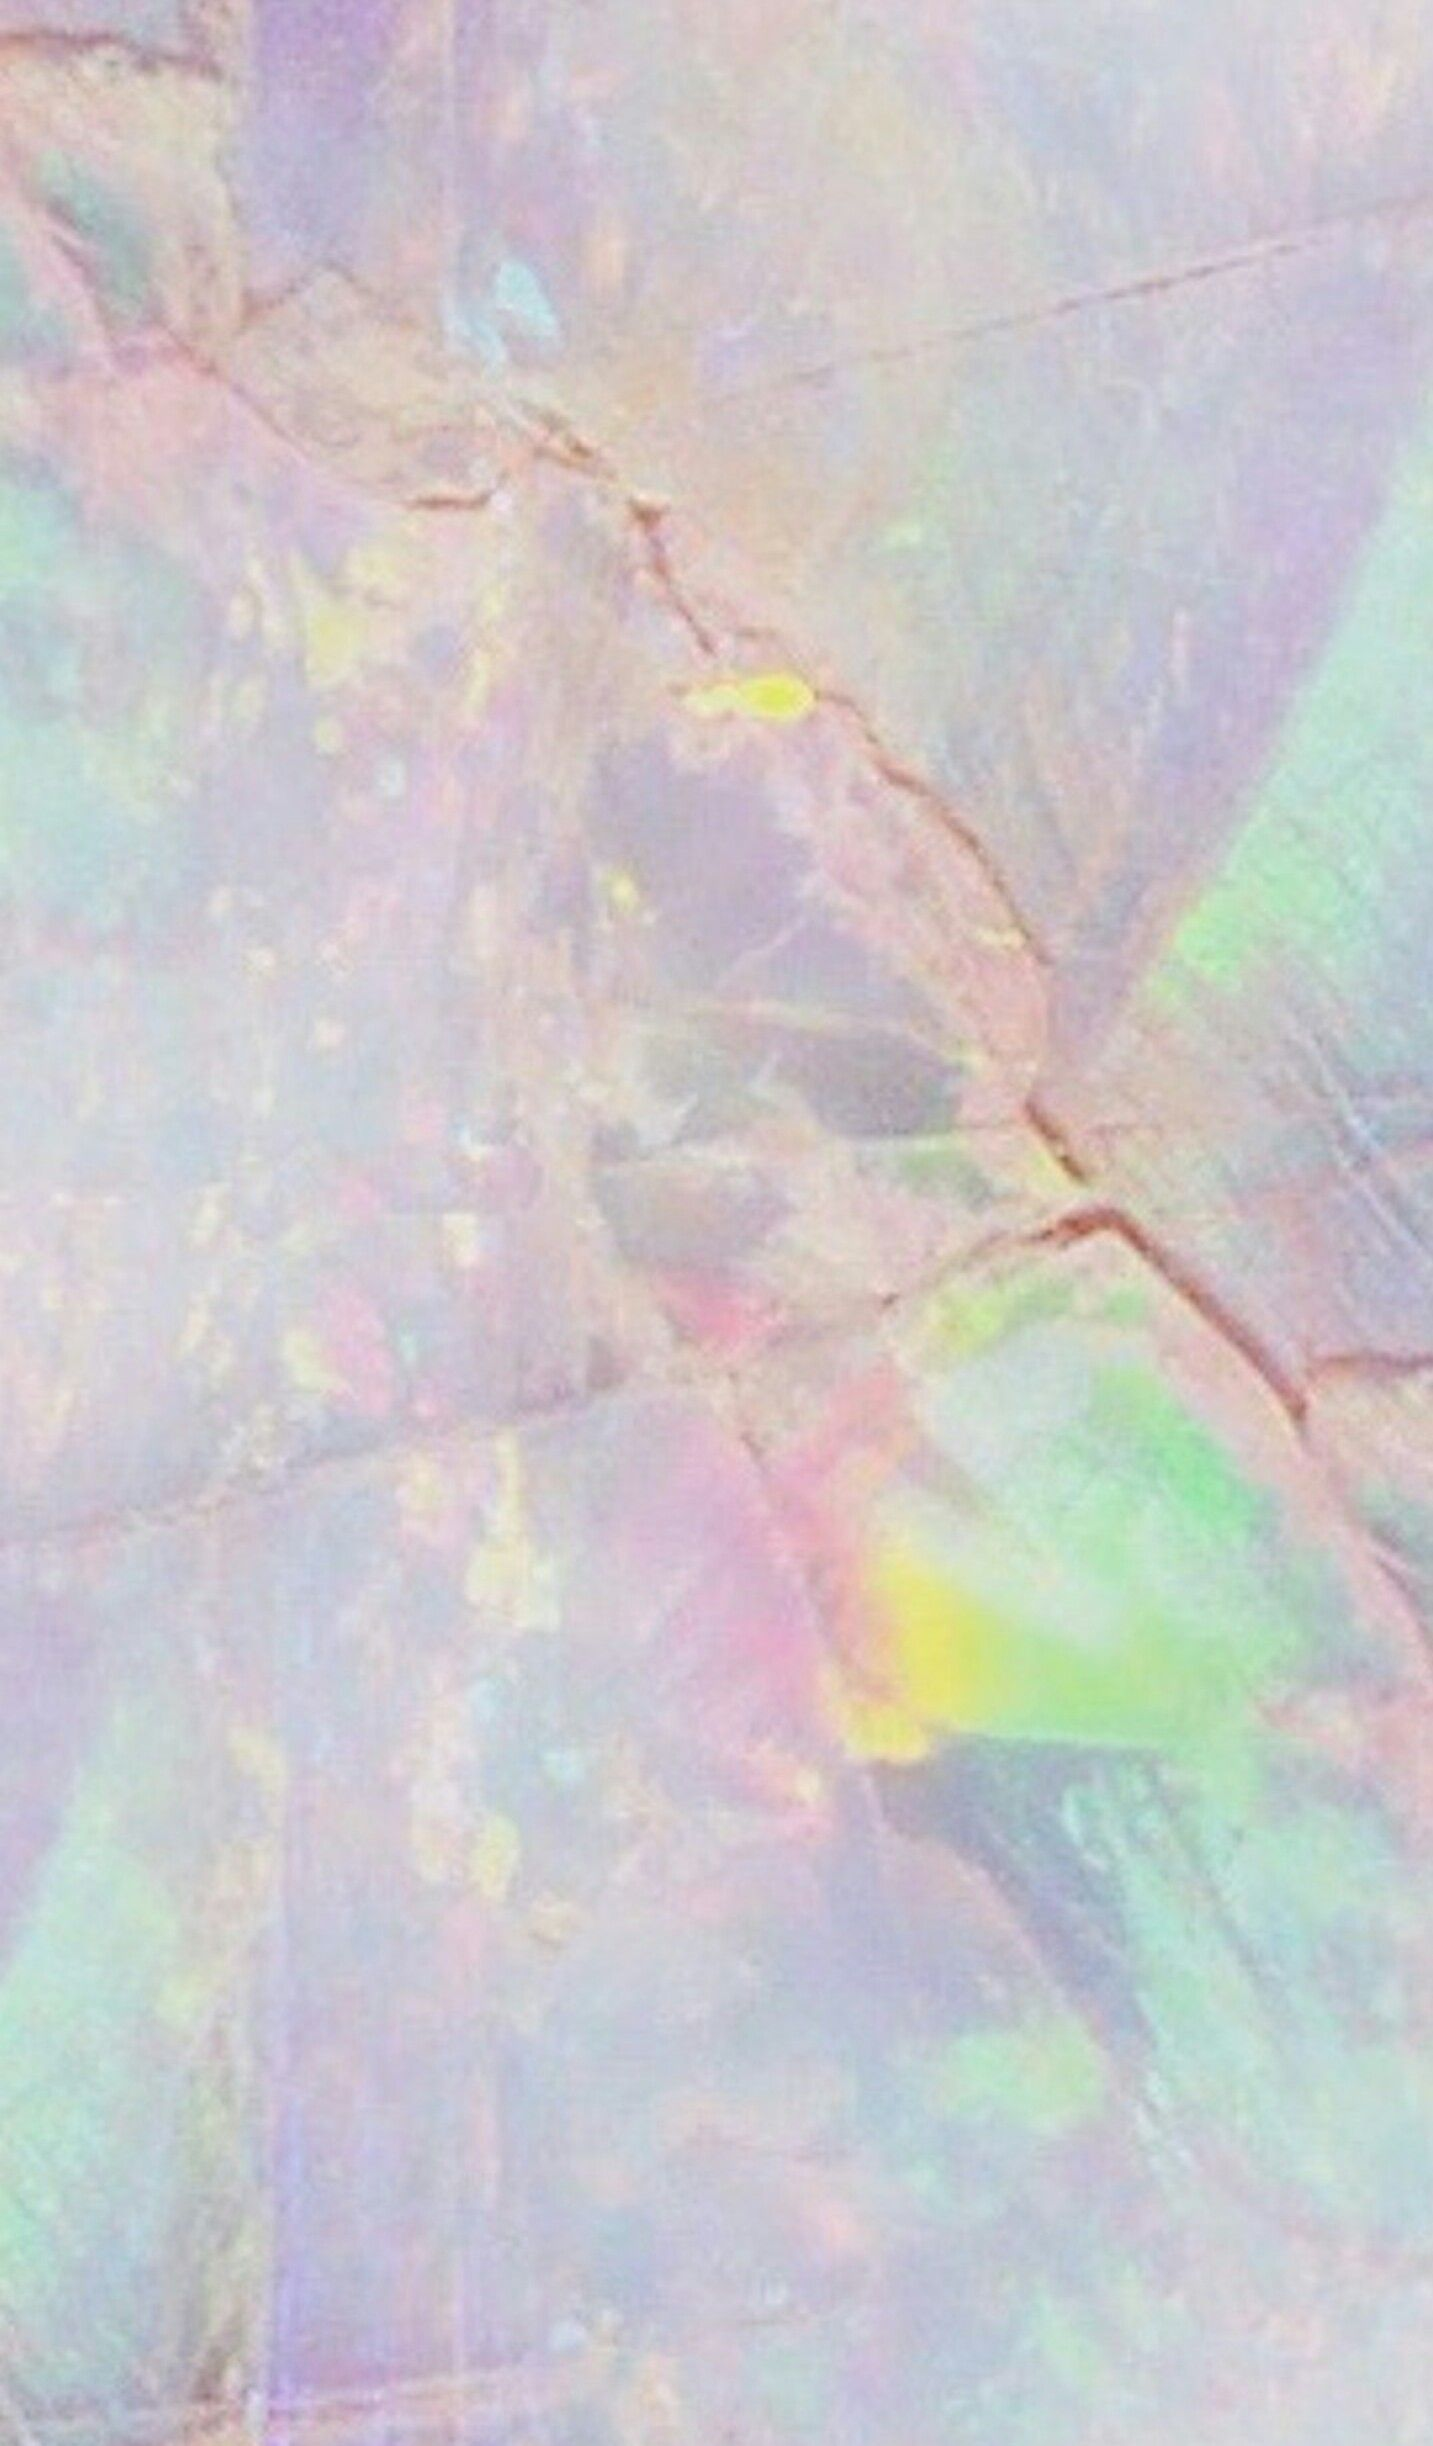 Tumblr iphone wallpaper pastel - Colorful Textured Marble Wallpaper